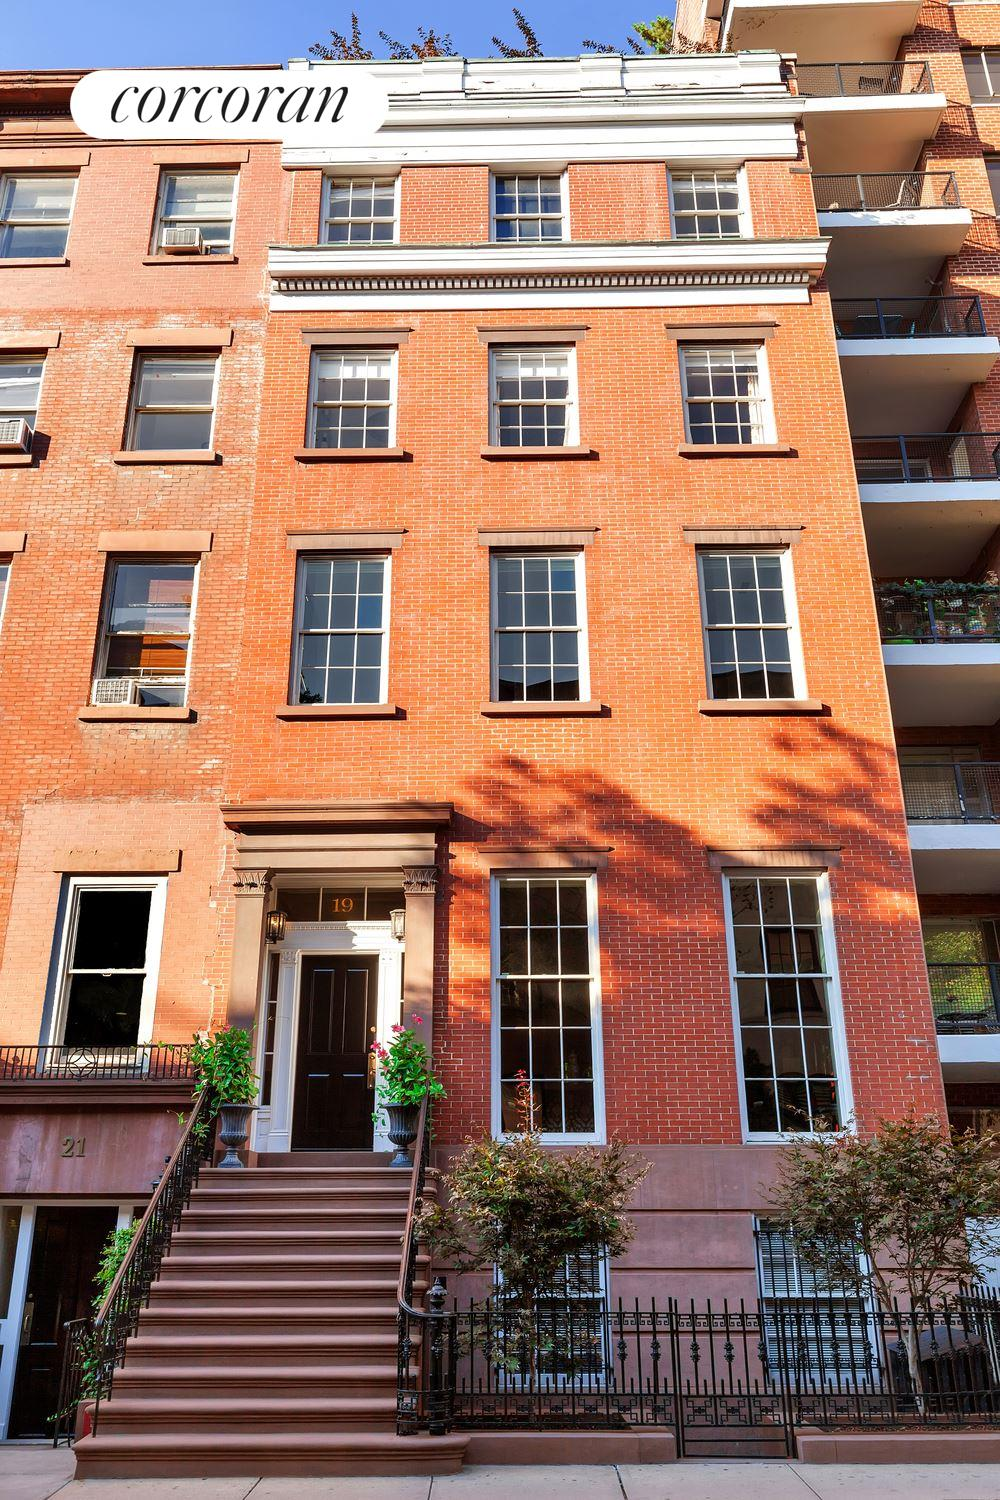 Single Family Home for Sale at 19 West 12th Street 19 West 12th Street New York, New York 10011 United States